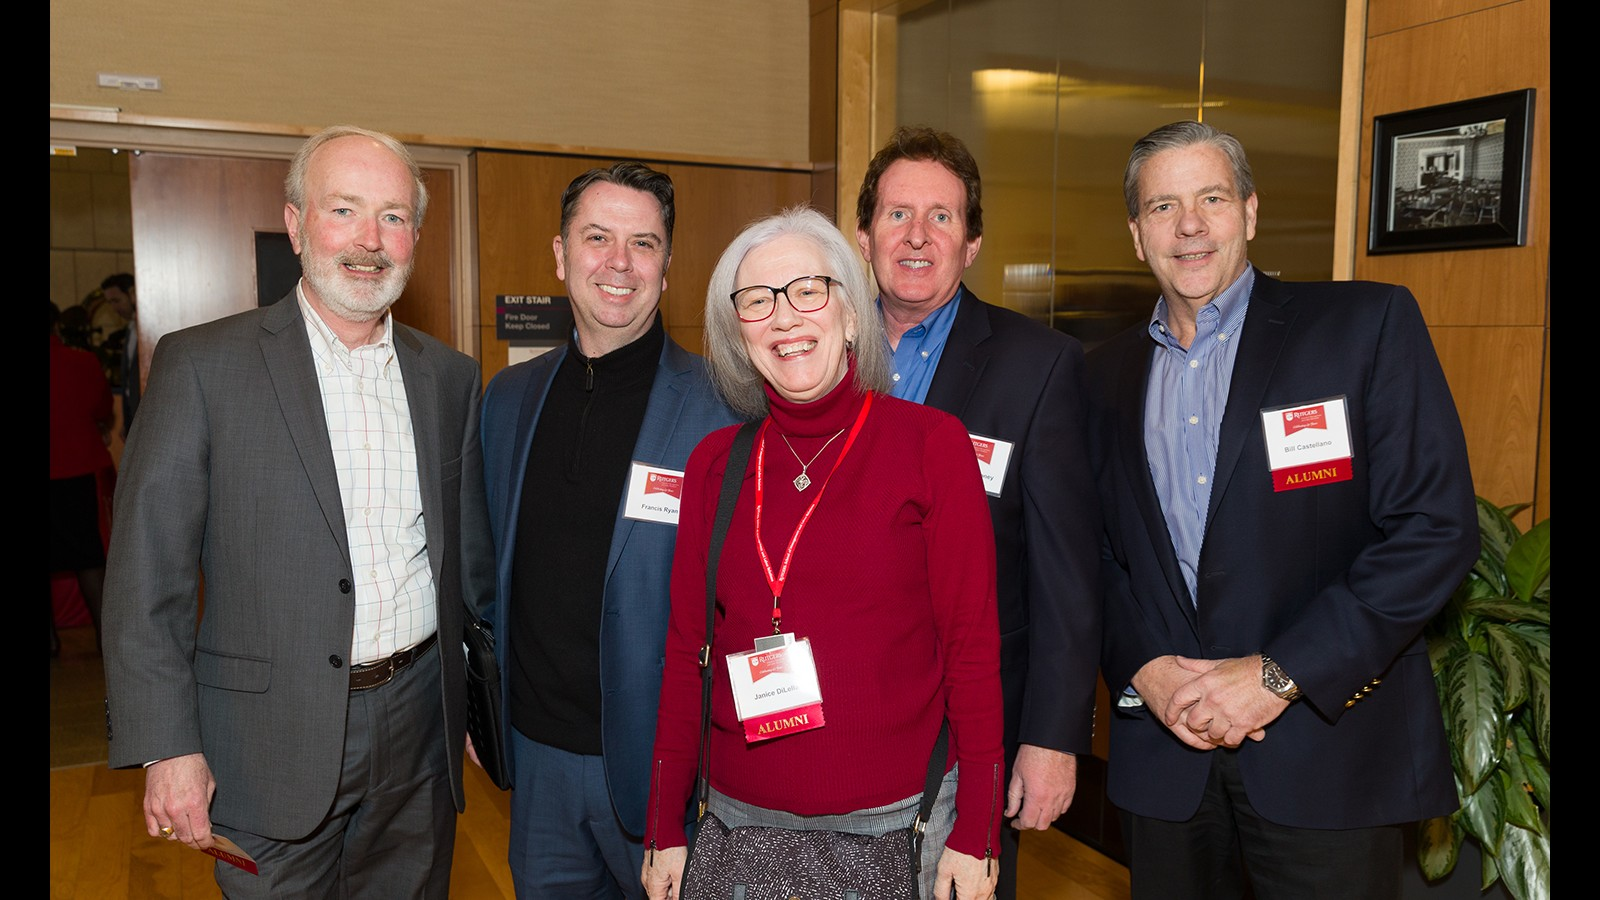 photo from SMLR's 25th Anniversary Celebration - March 2020